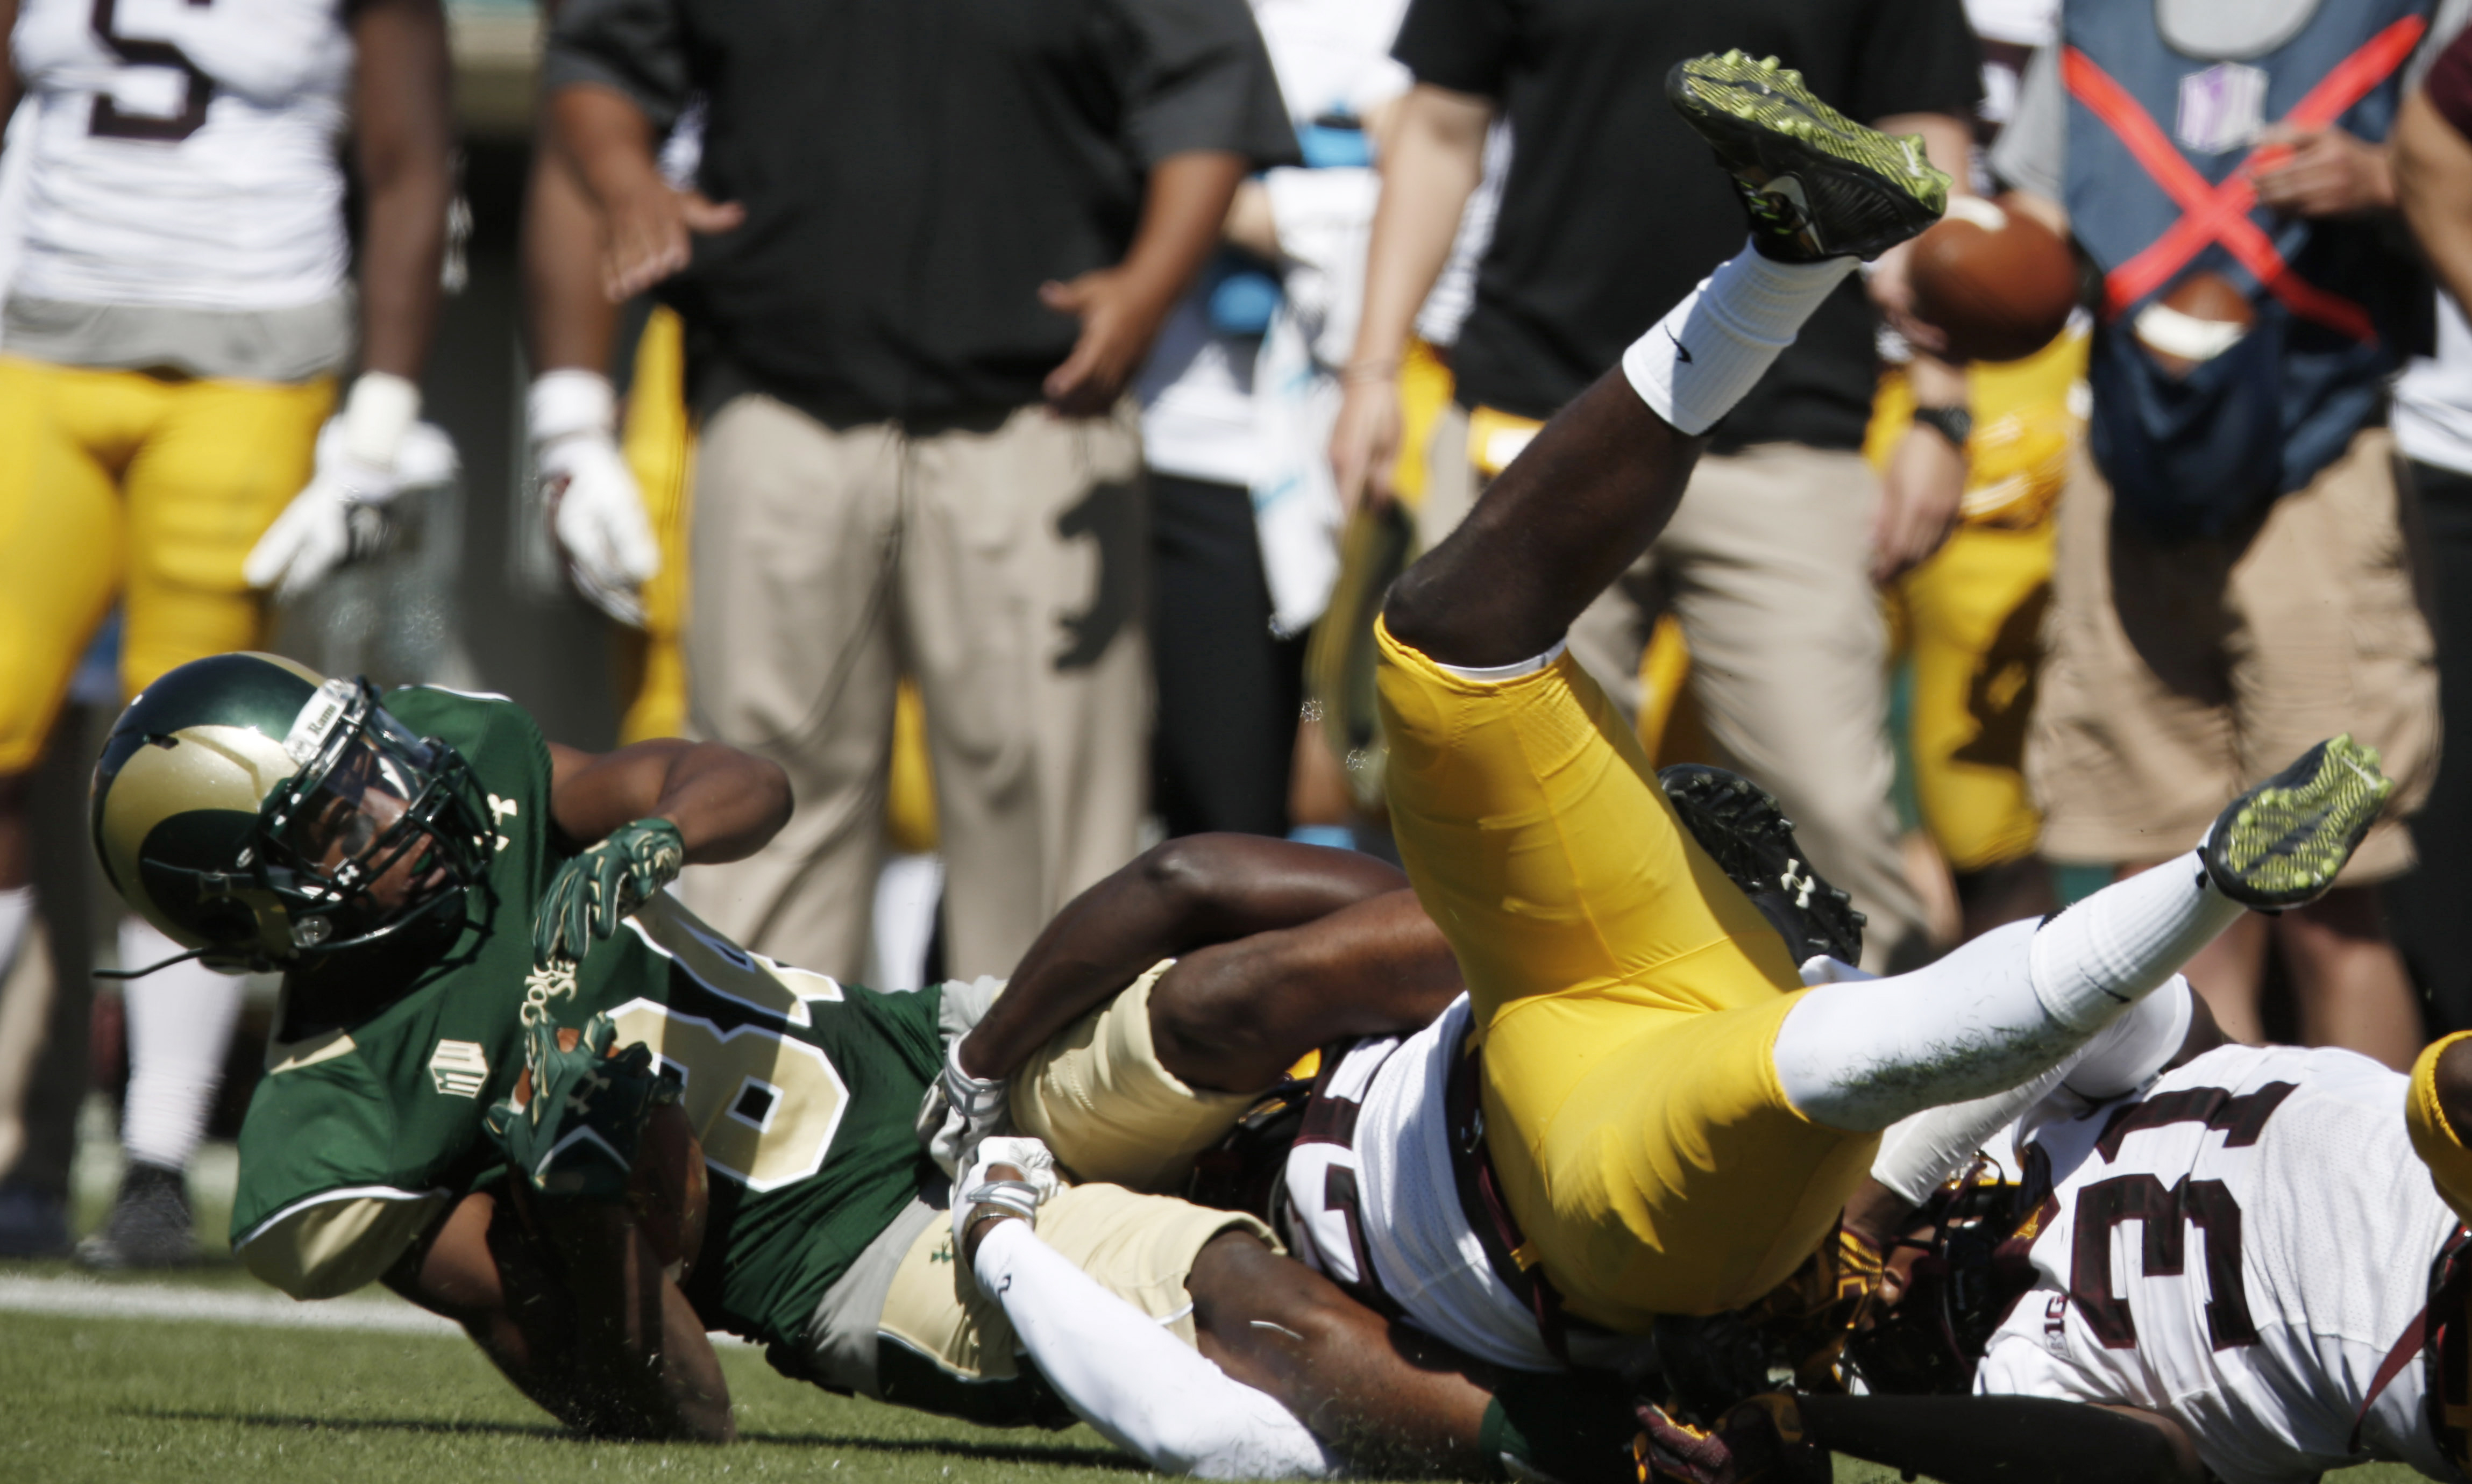 Colorado State wide receiver Xavier Williams, left, is pulled down after making a pass reception by Minnesota linebacker De'Vondre Campbell in the second quarter of an NCAA college football game Saturday, Sept. 12, 2015, in Fort Collins, Colo. (AP Photo/D